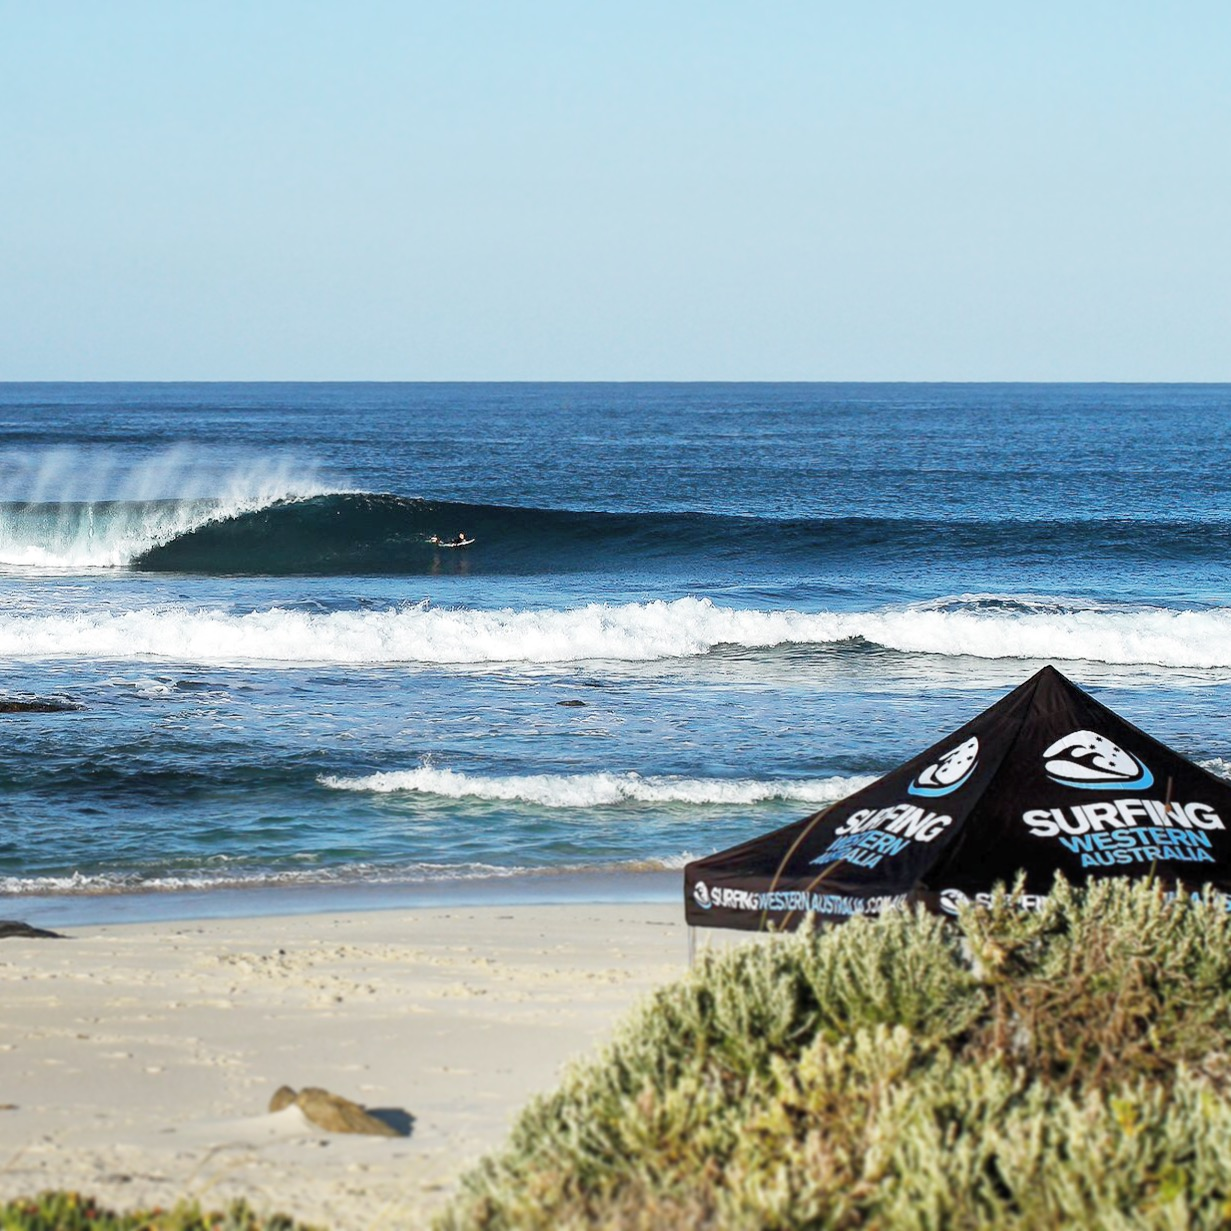 Surfing WA will be joining forces with Three Crowns Media Group for a three year partnership.